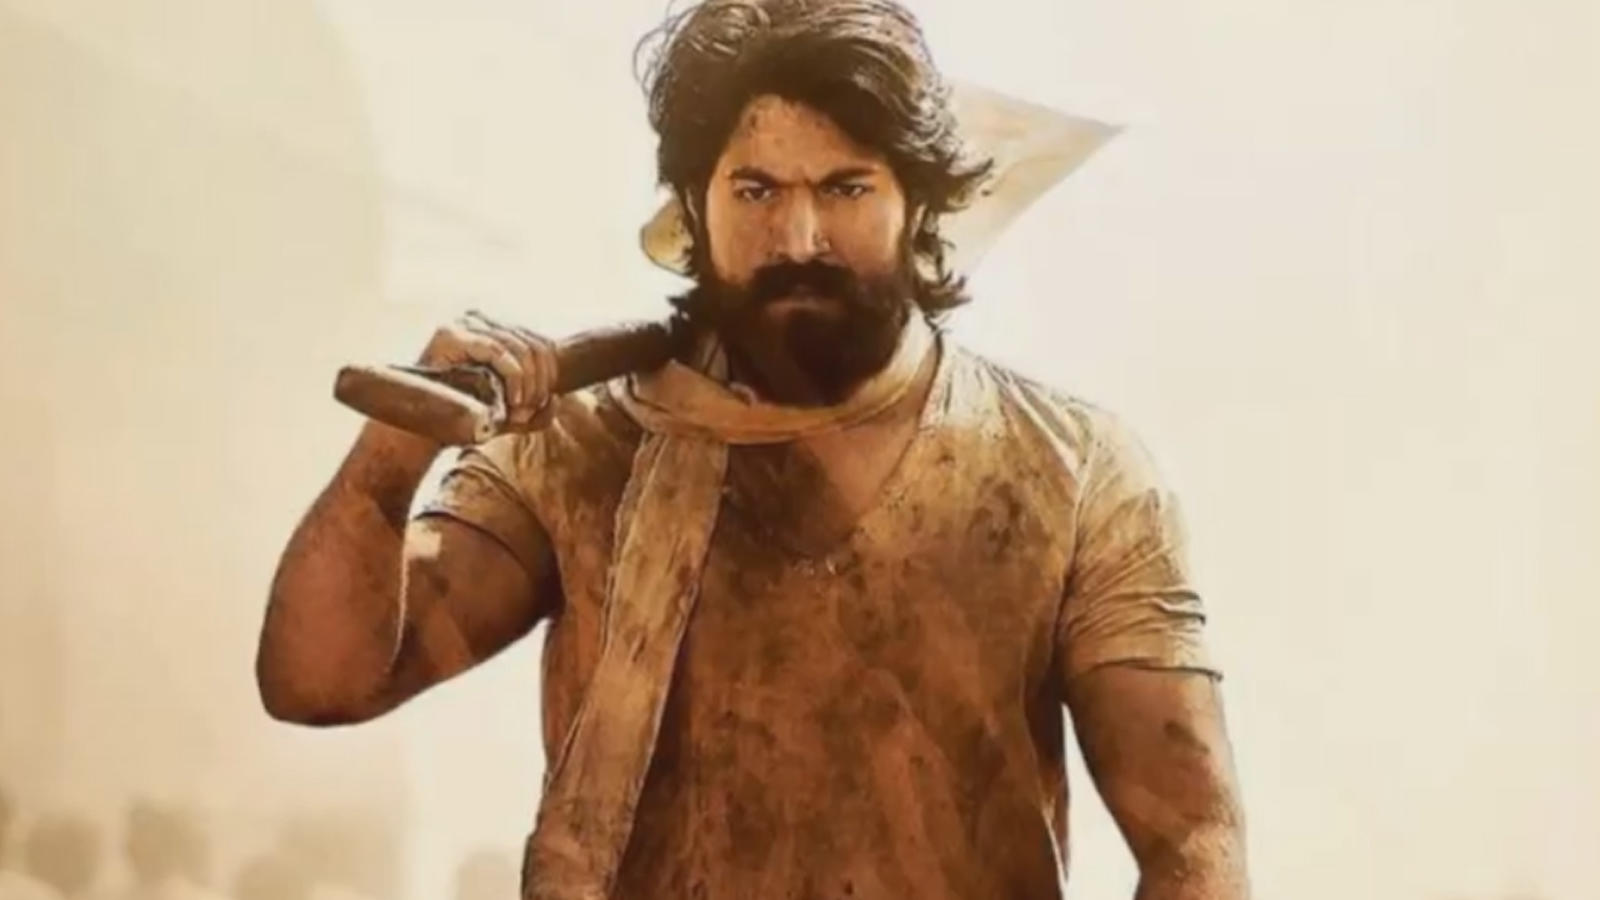 Actor Yash's transformation through years